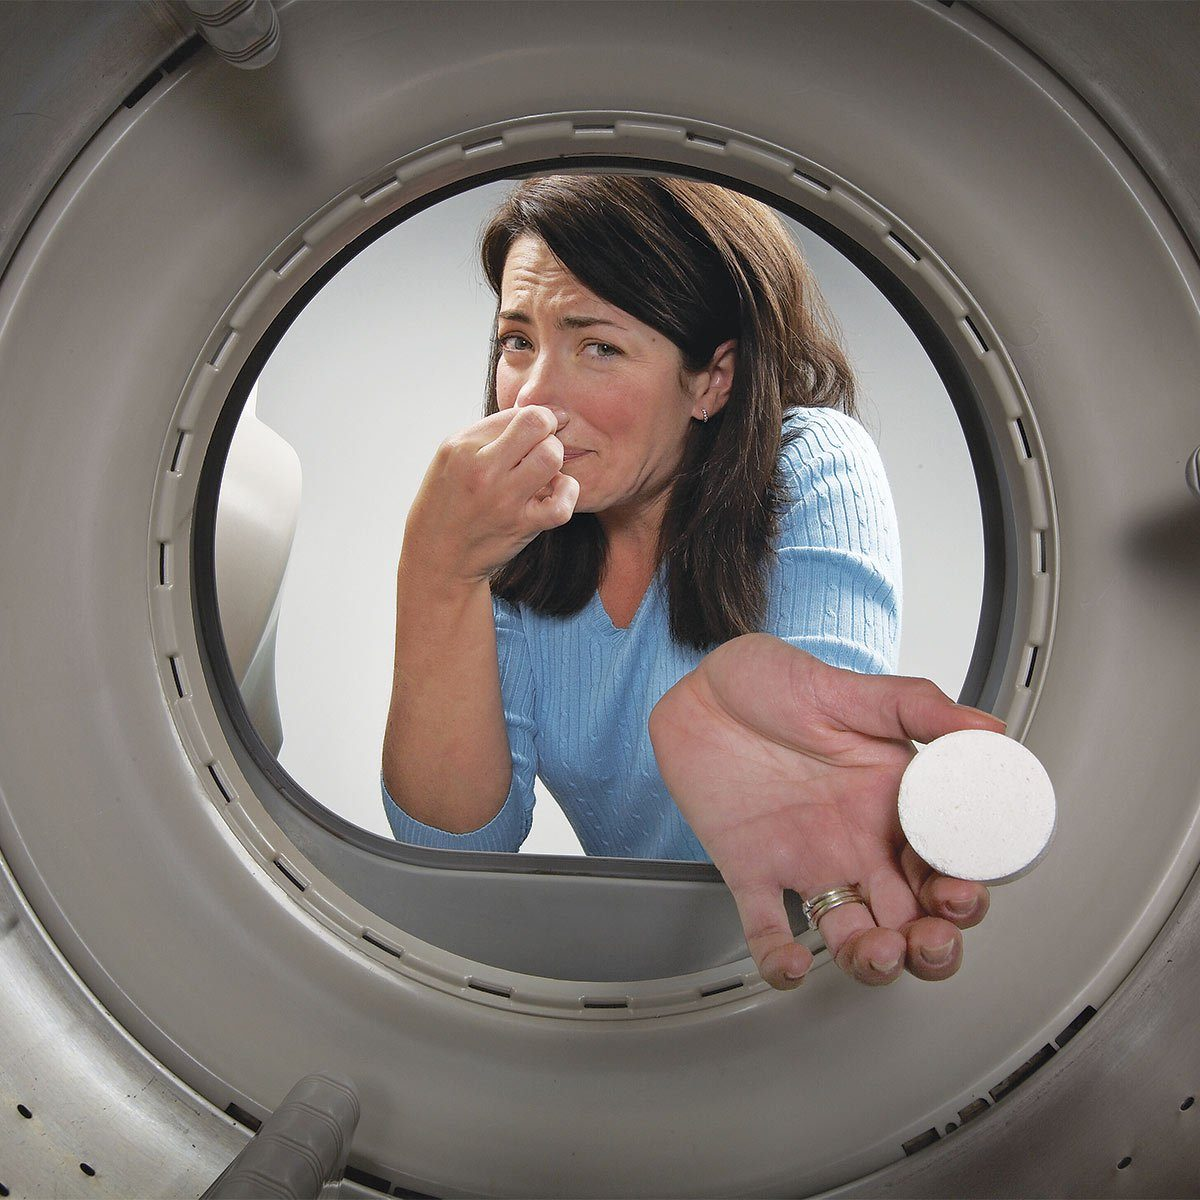 Woman pinching her nose and putting a disk into the washer